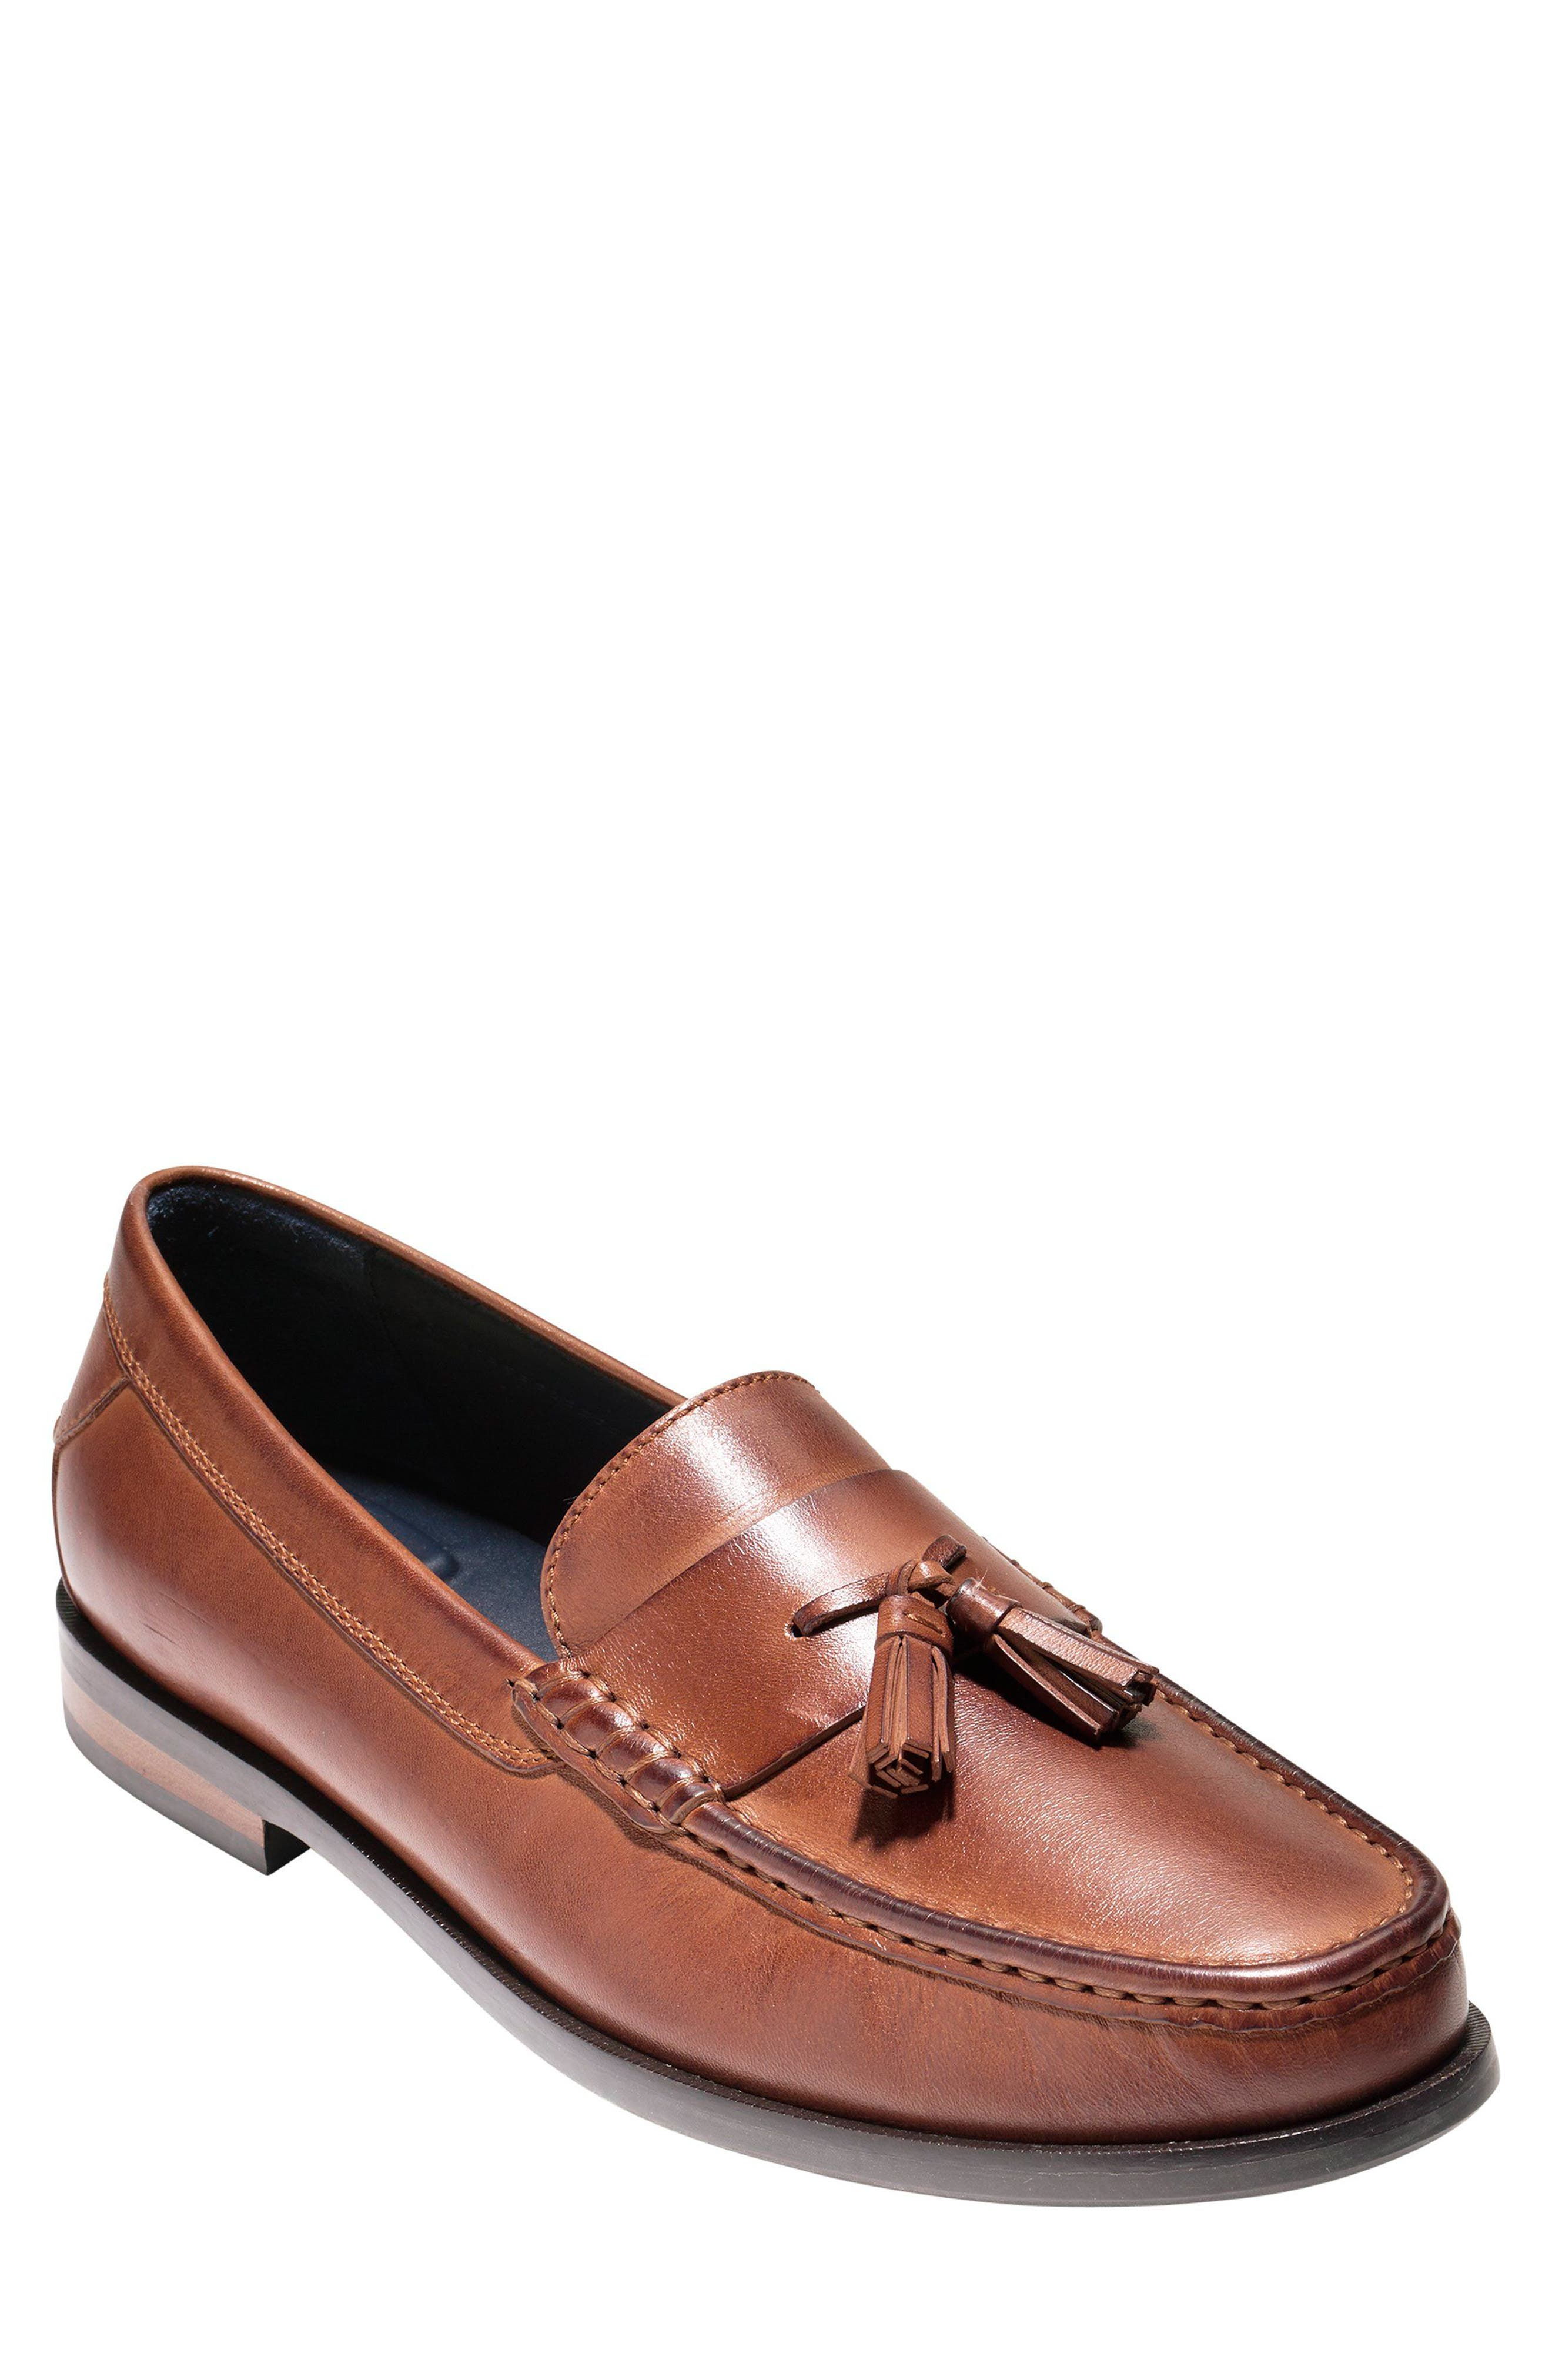 Main Image - Cole Haan Pinch Friday Tassel Loafer (Men)